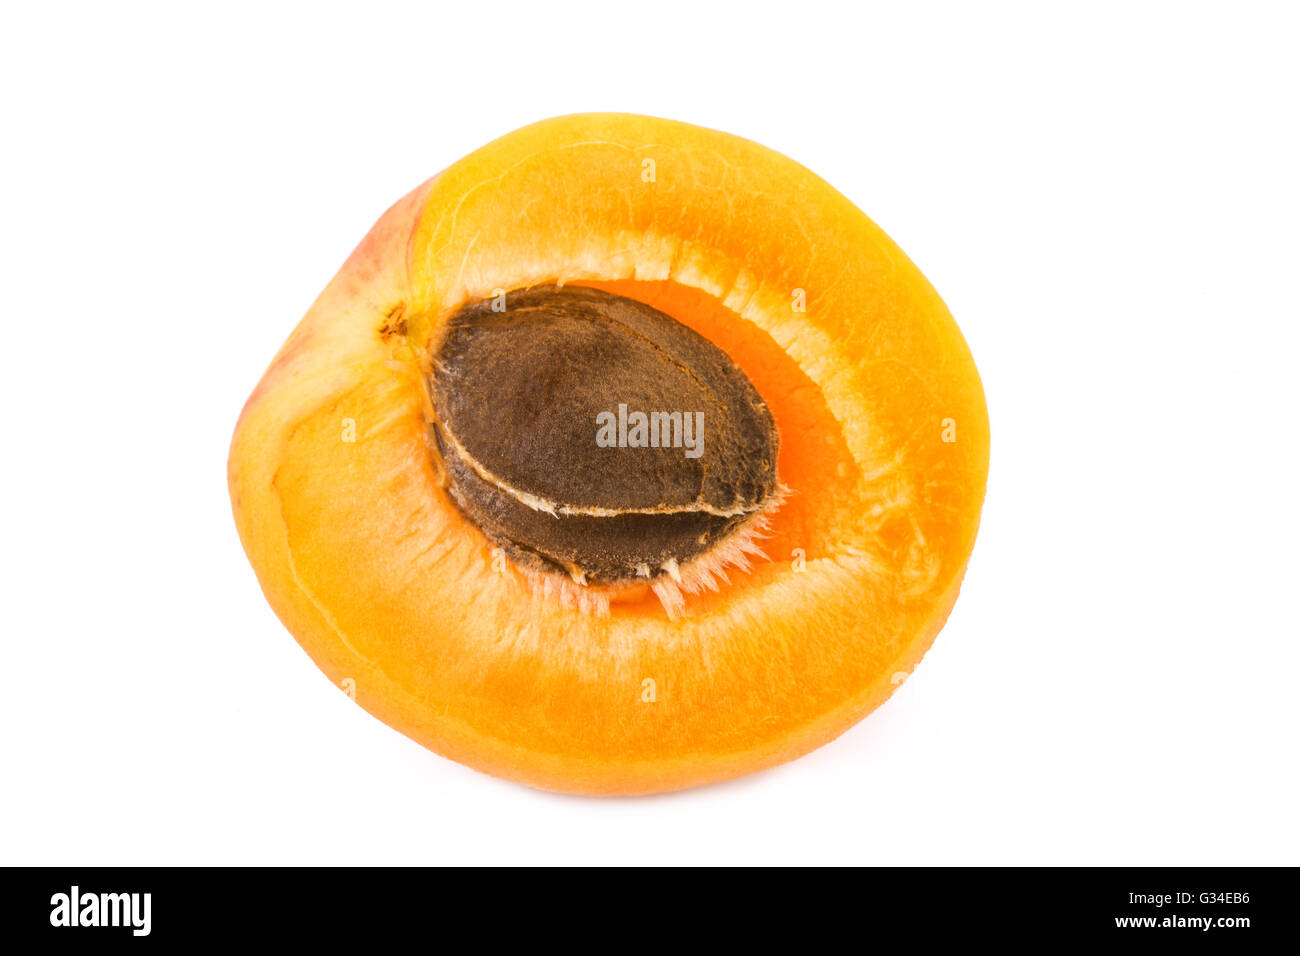 Apricot half with fruit kernel on white background. Closeup. - Stock Image